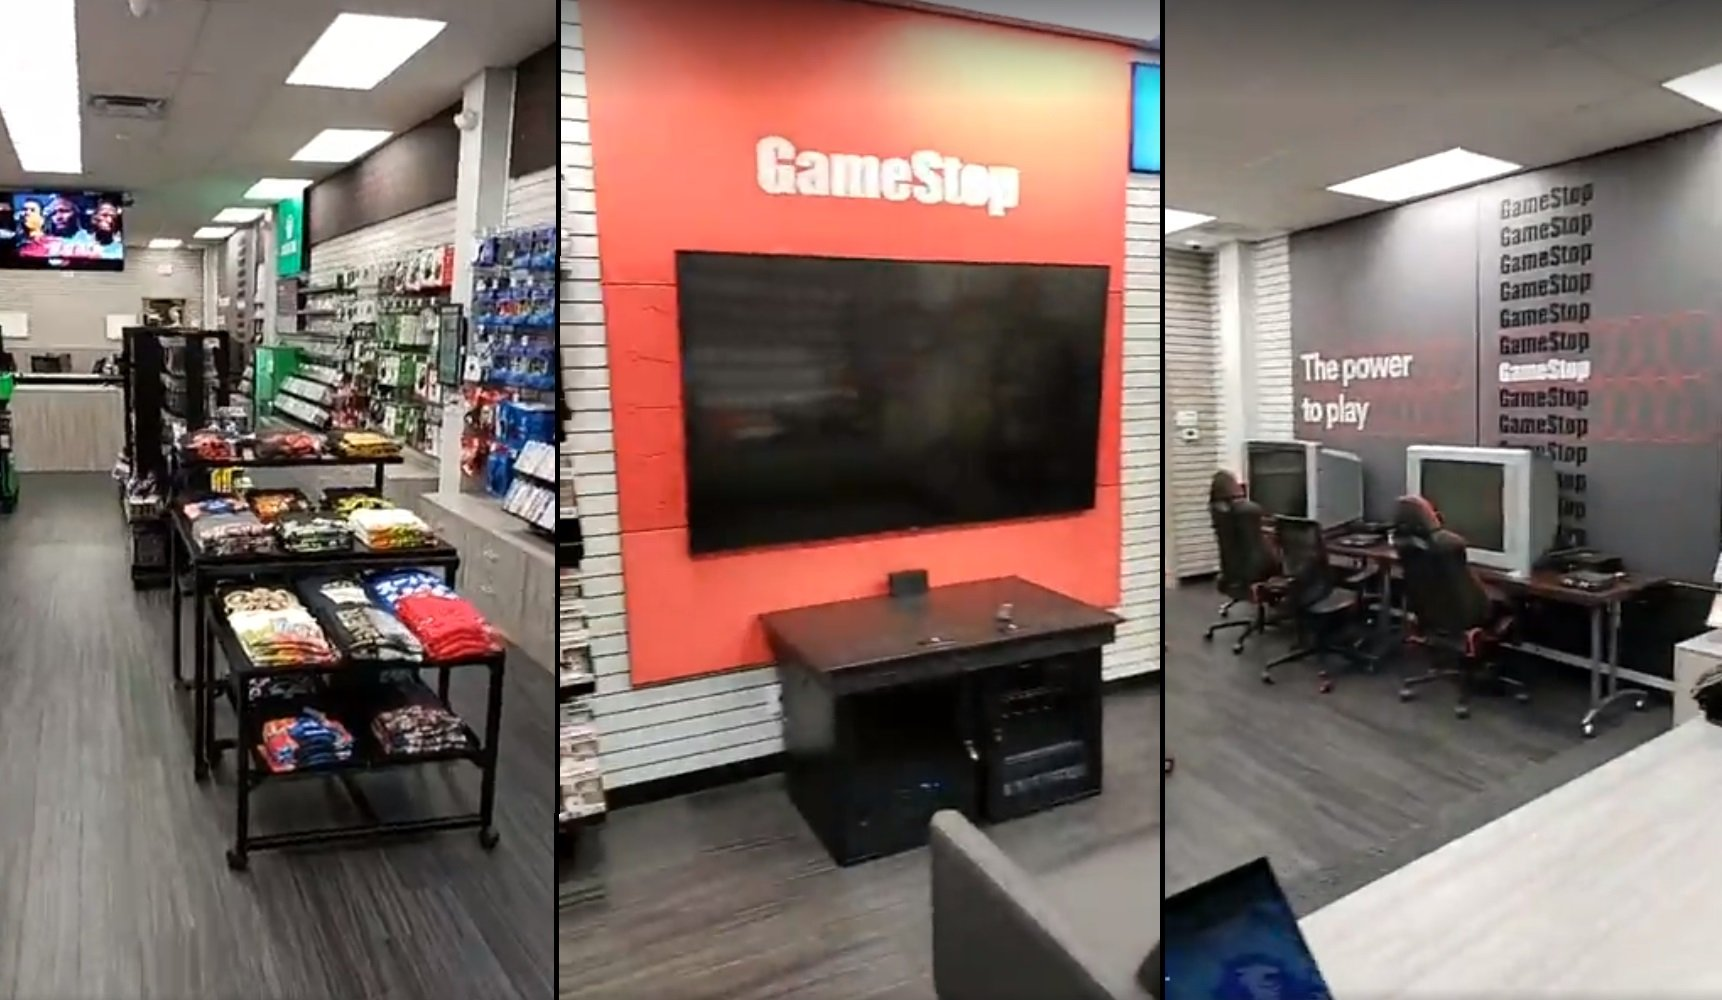 Check out GameStop's modern redesign